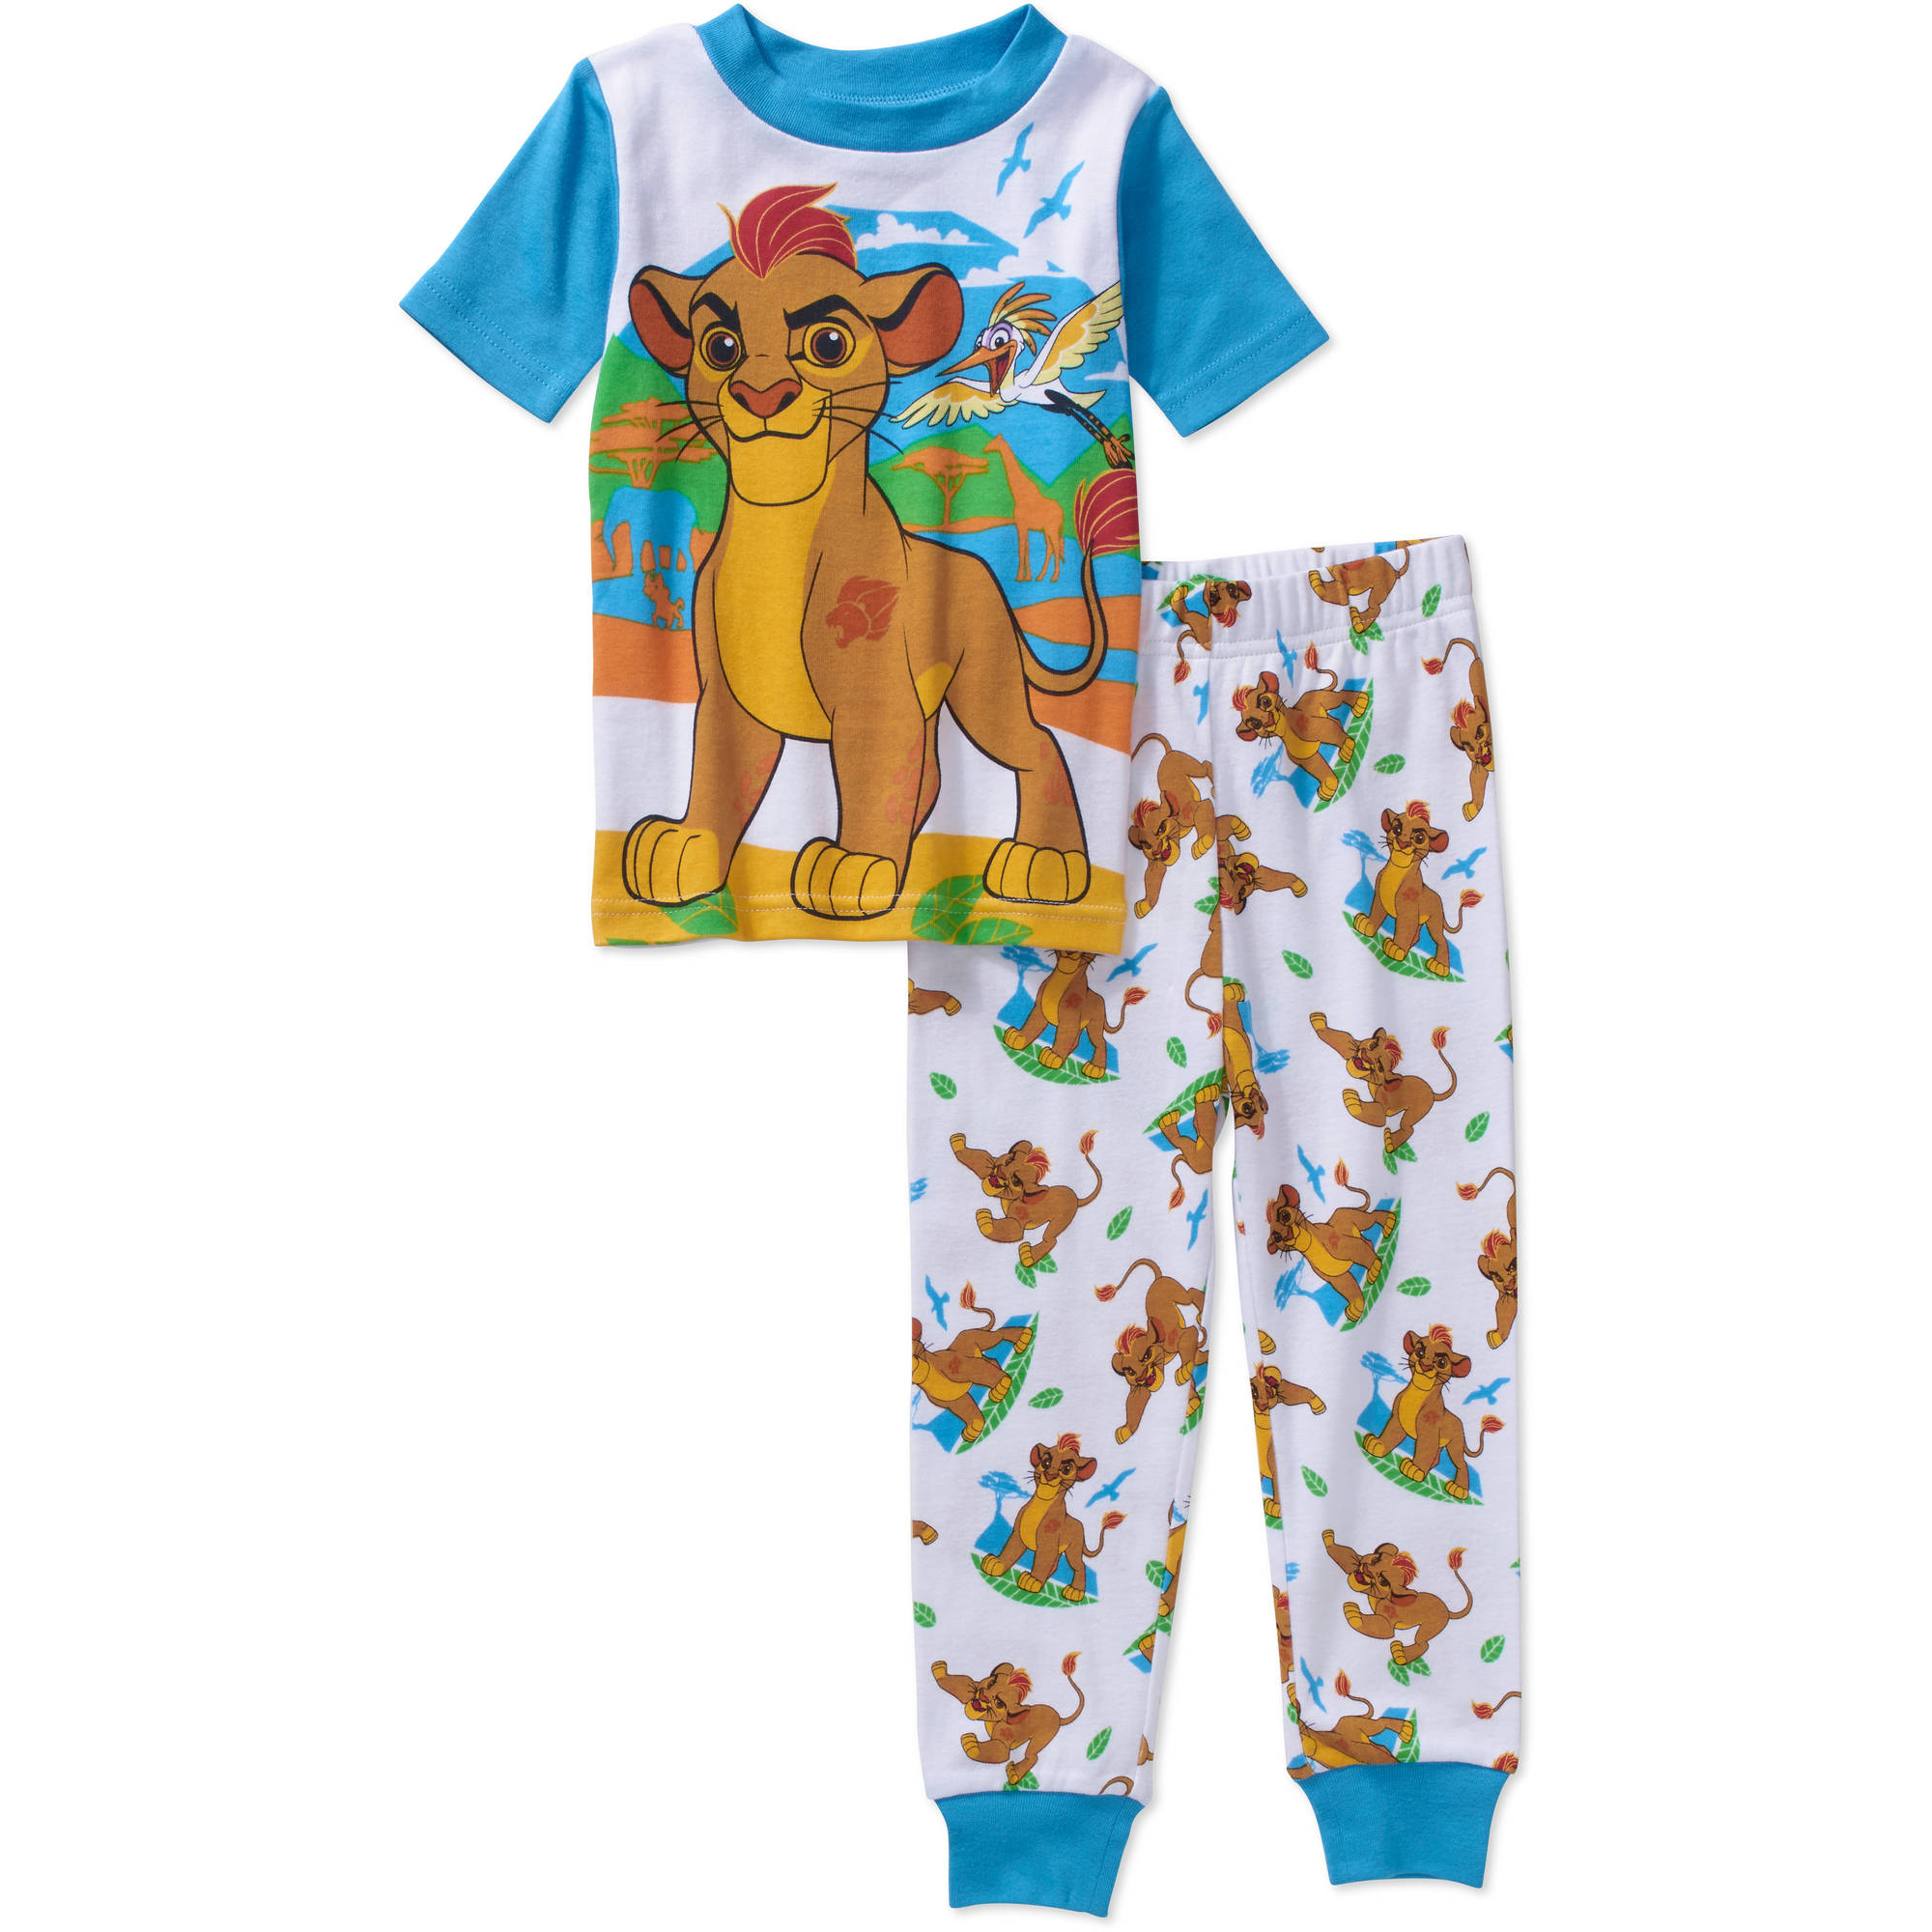 The Lion Guard Toddler Boys' Licensed Cotton Pajama Sleepwear Set